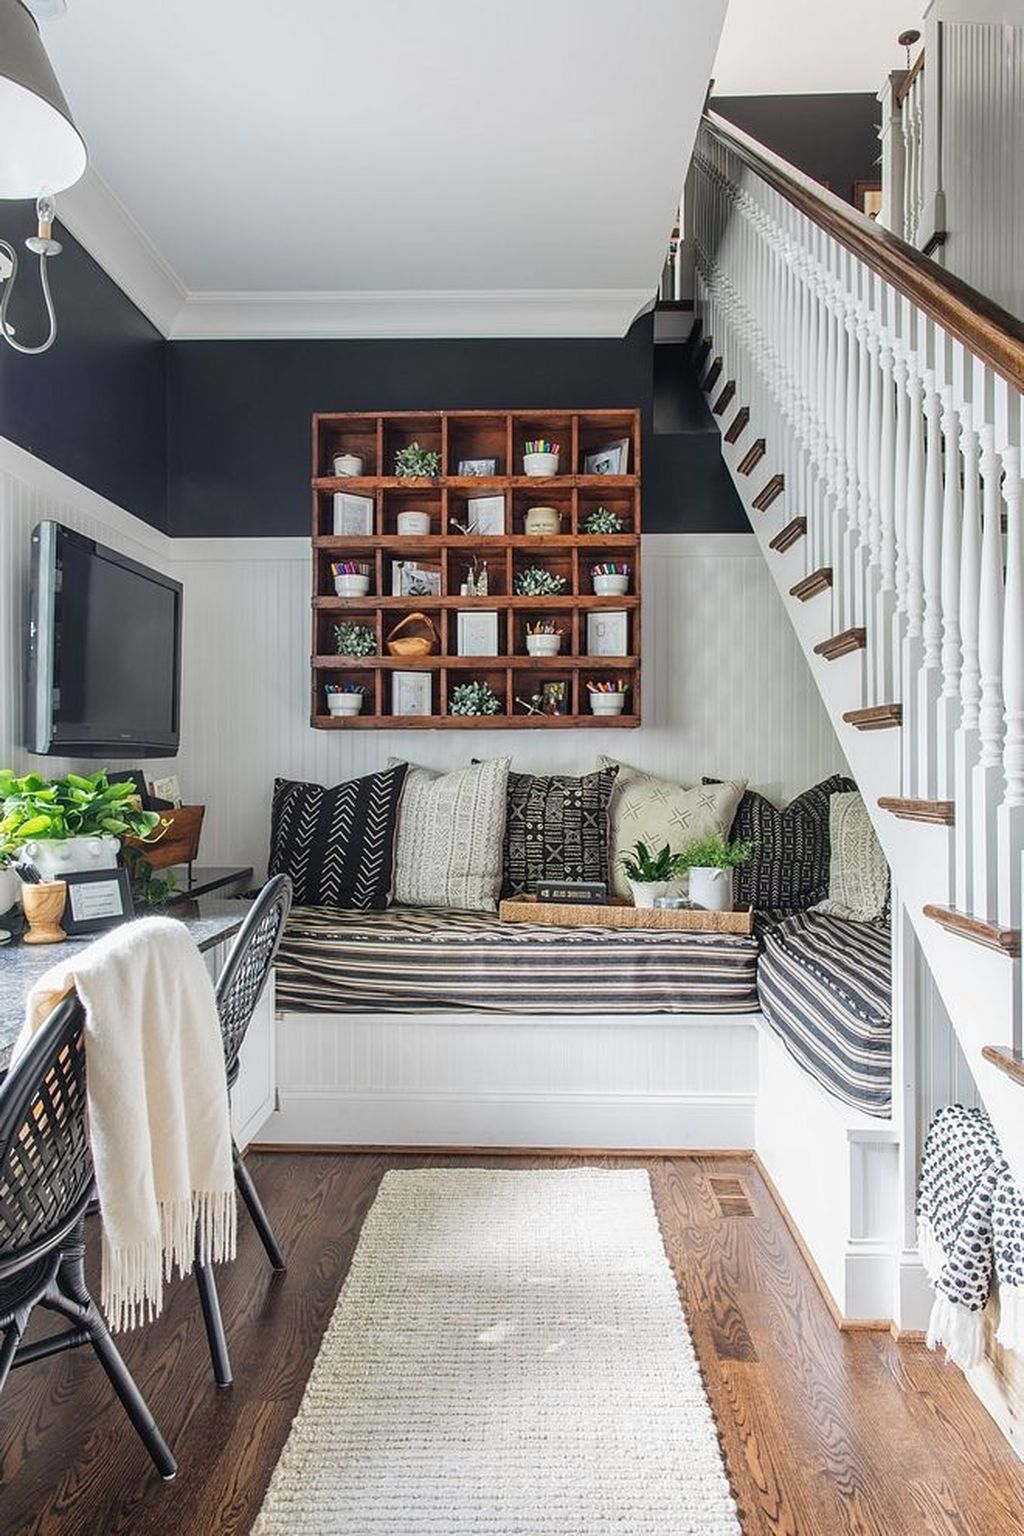 43 Cute Small Home Interior Decorating Ideas You Can Try